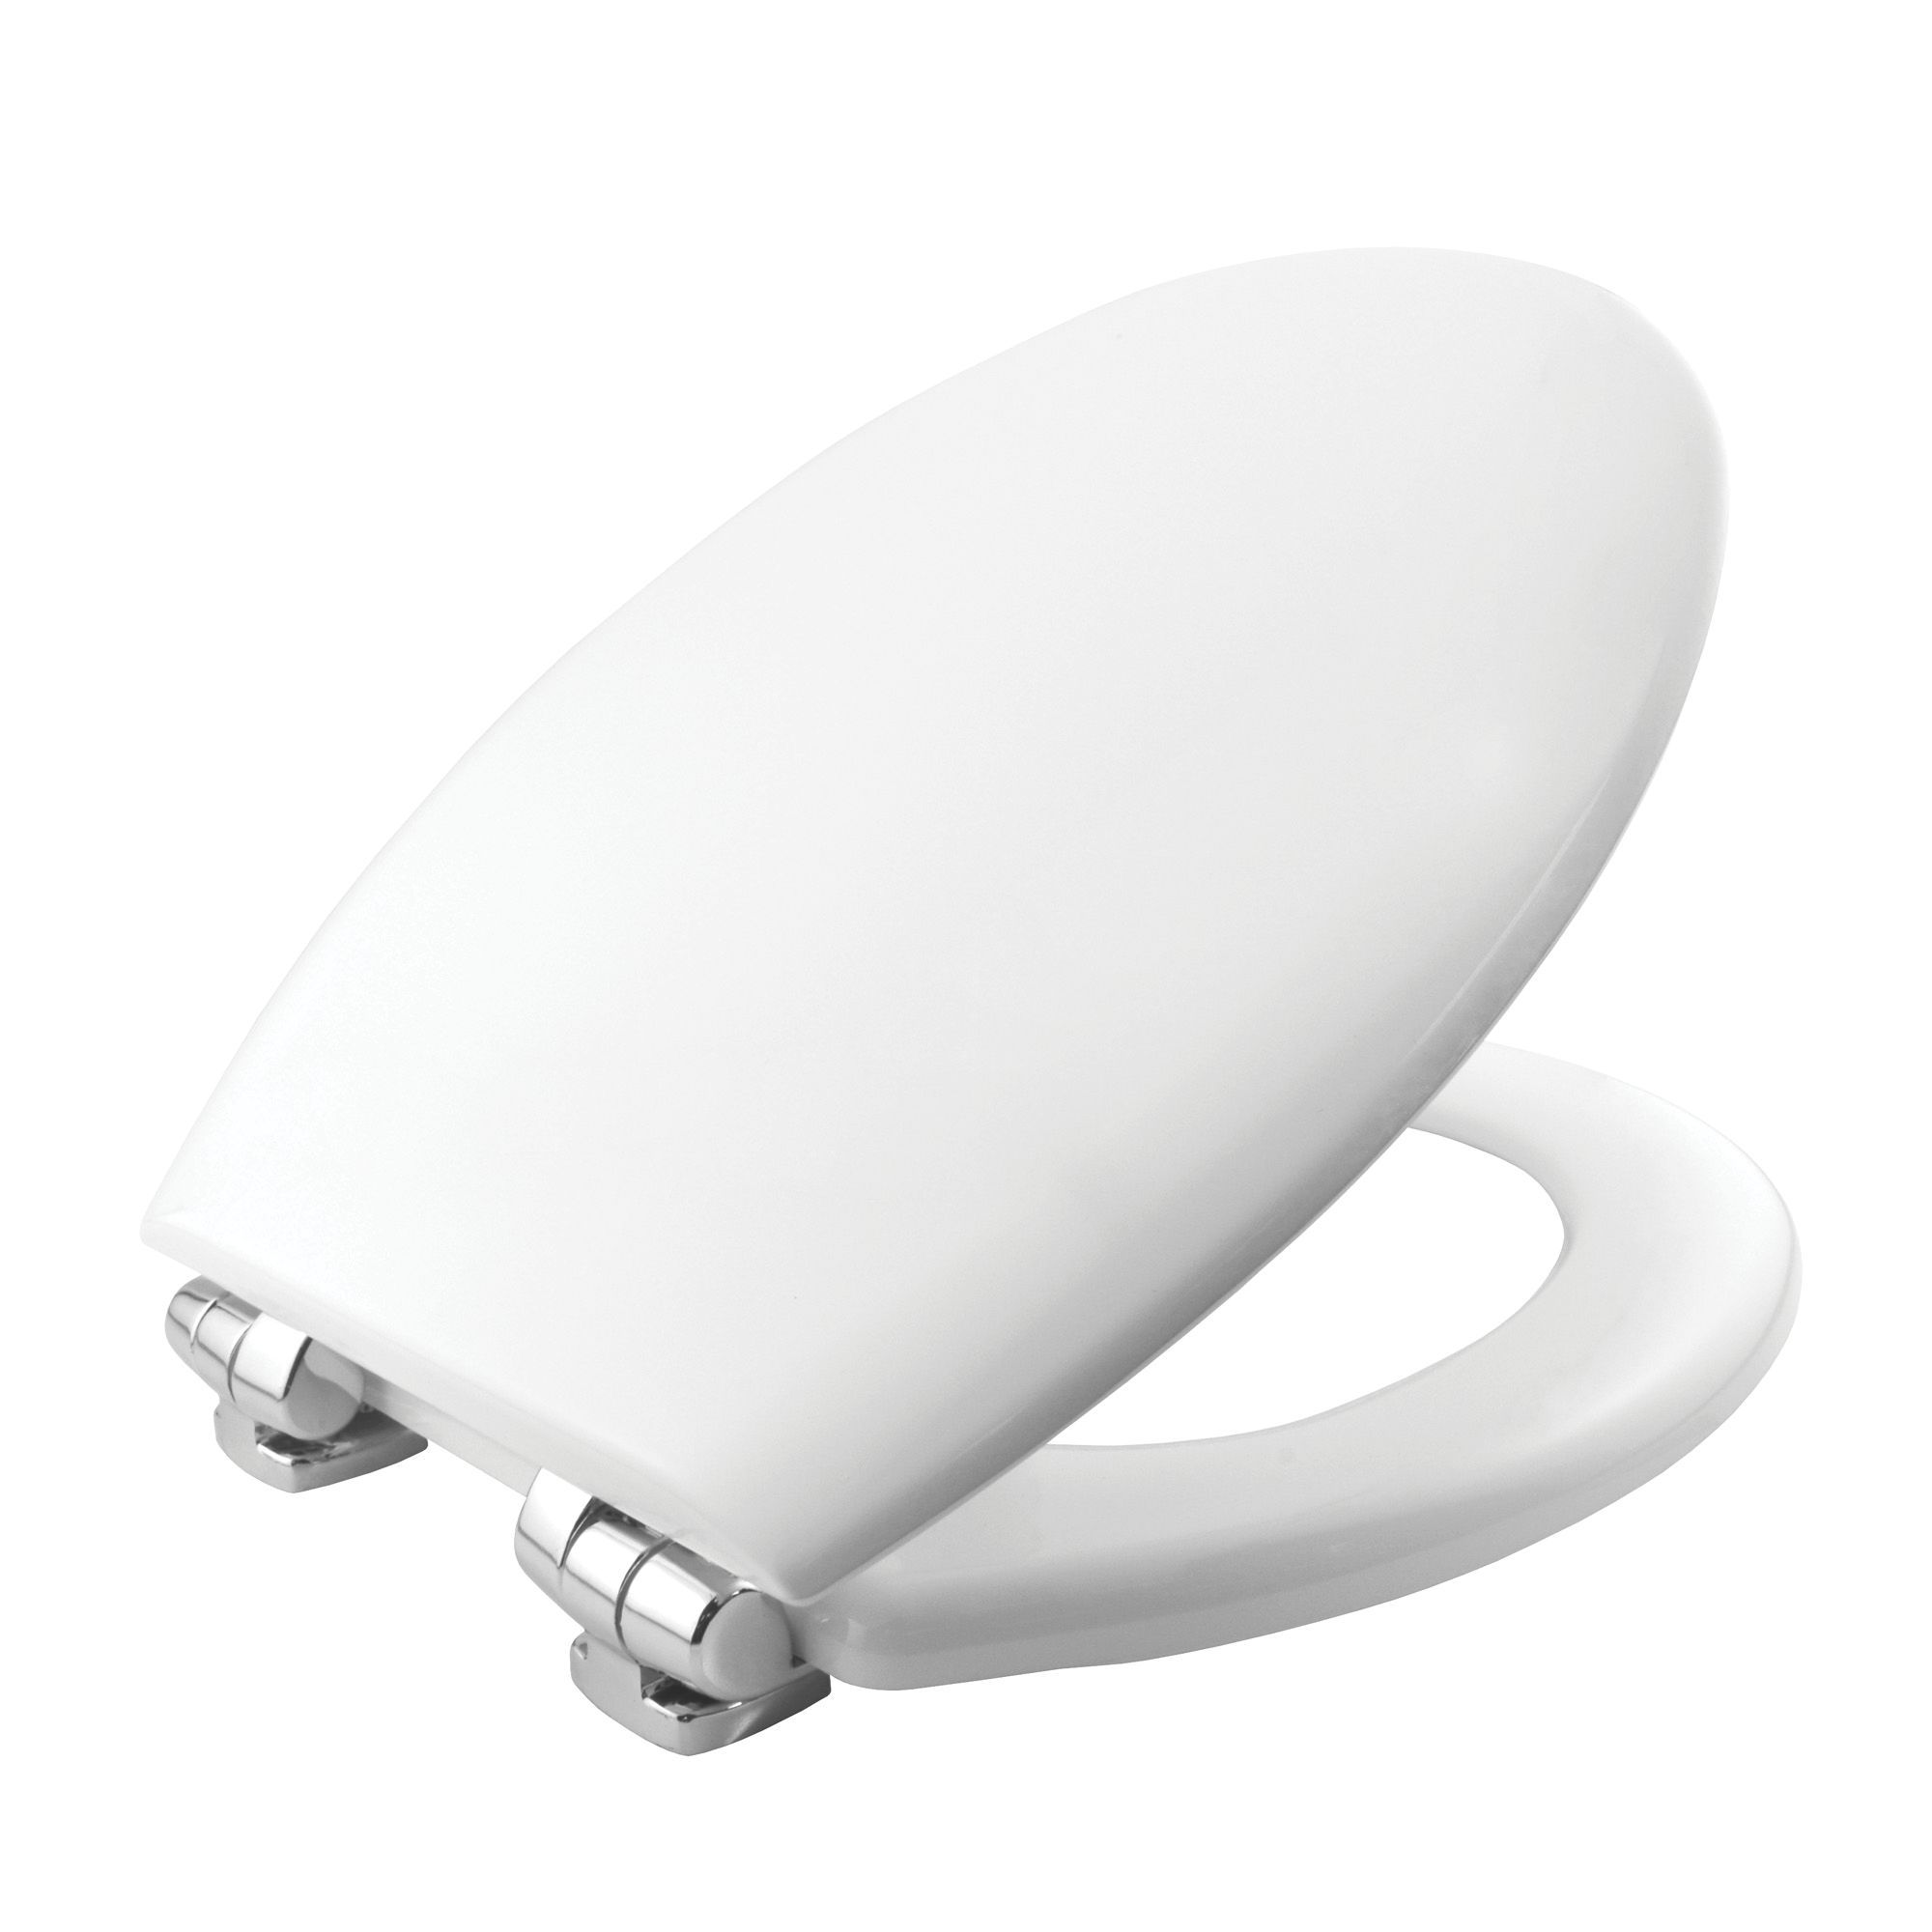 Lovely Bemis New York White Soft Close Toilet Seat